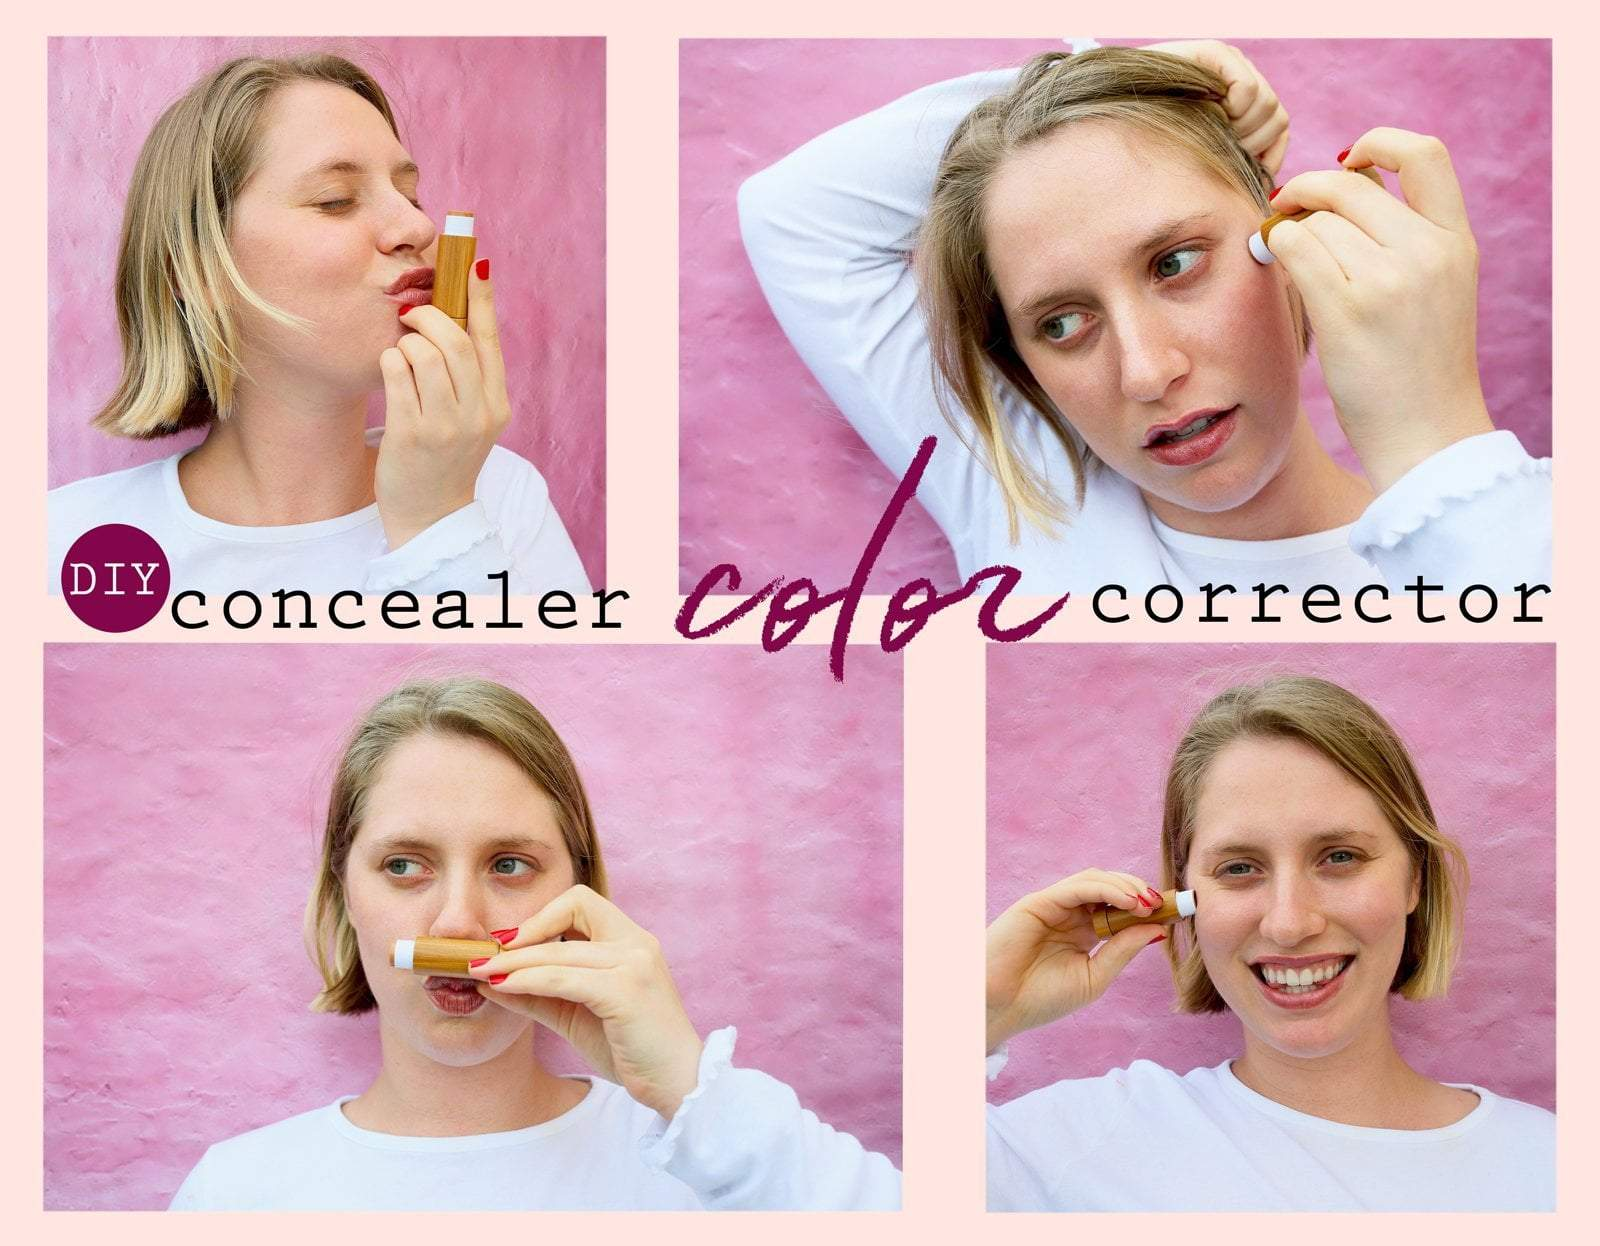 DIY Concealer Color Corrector With Essential Oils